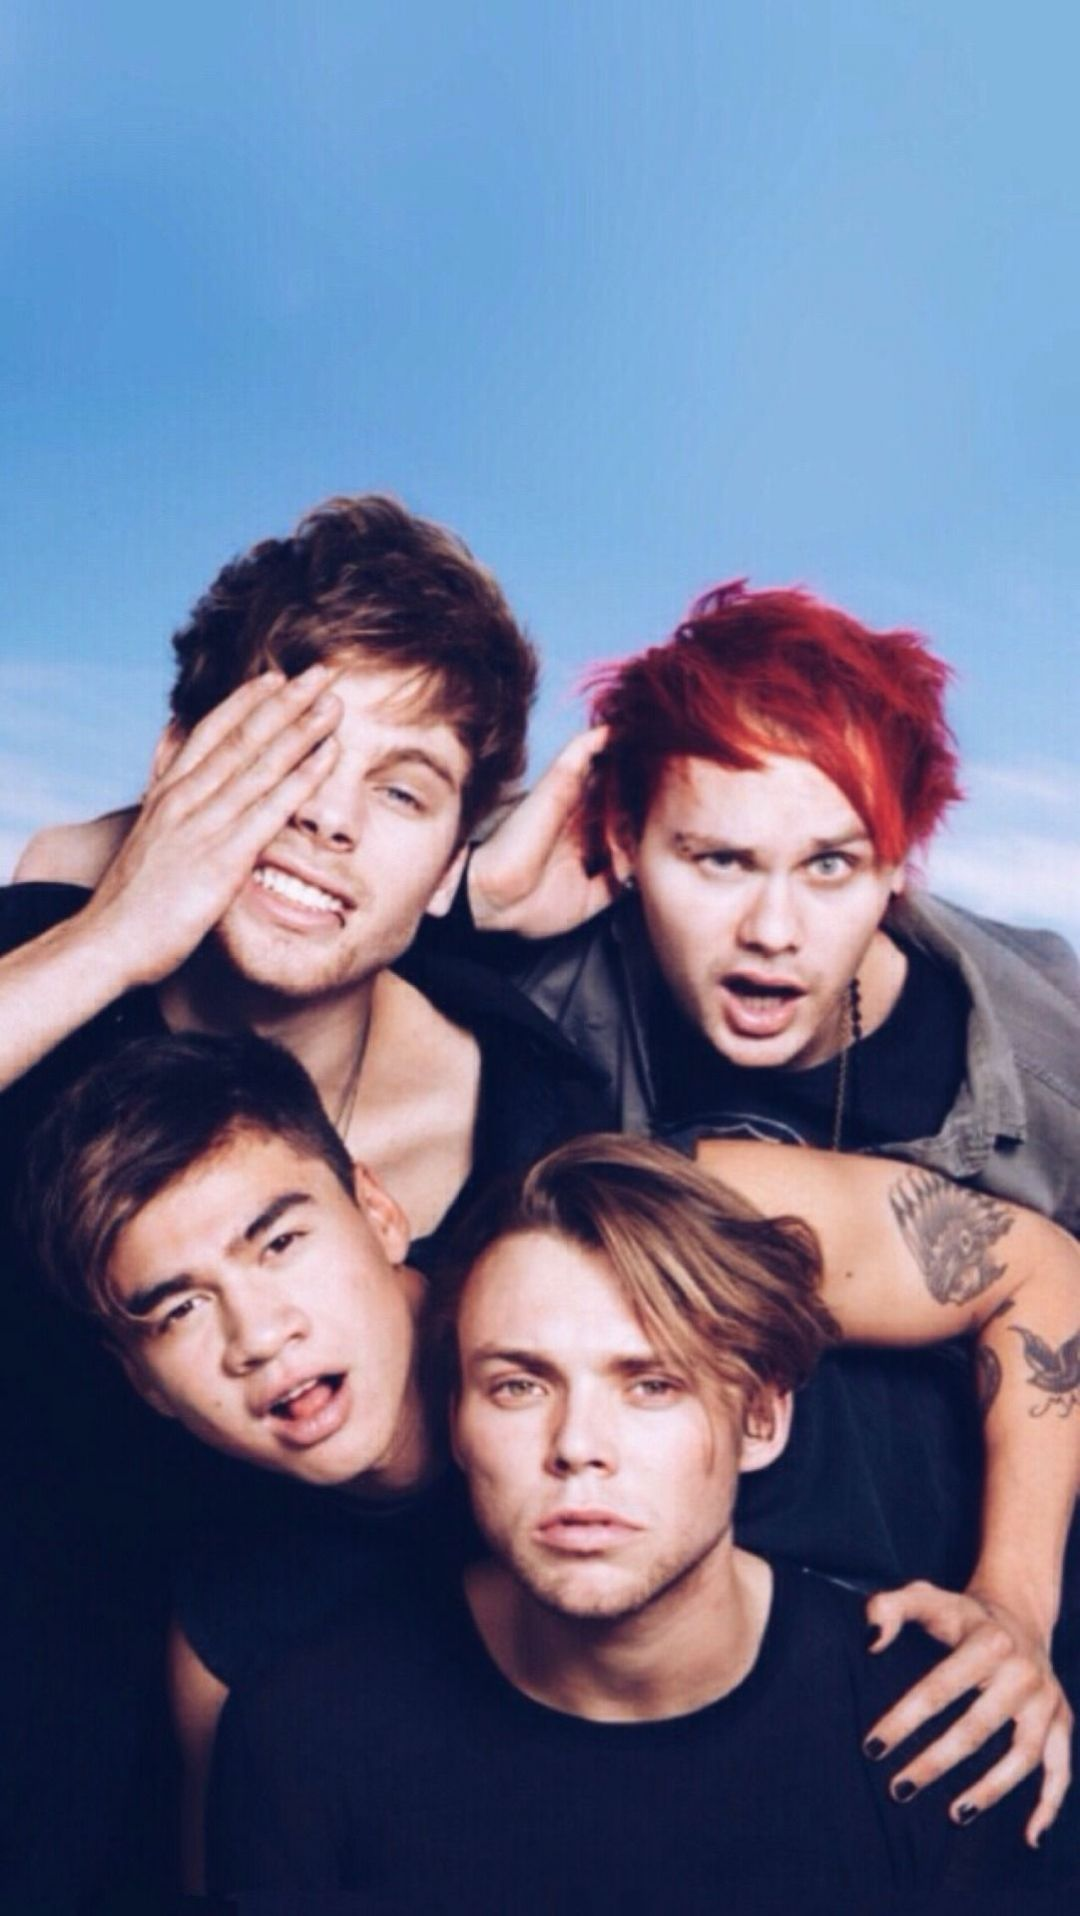 45 5 Seconds Of Summer Android Iphone Desktop Hd